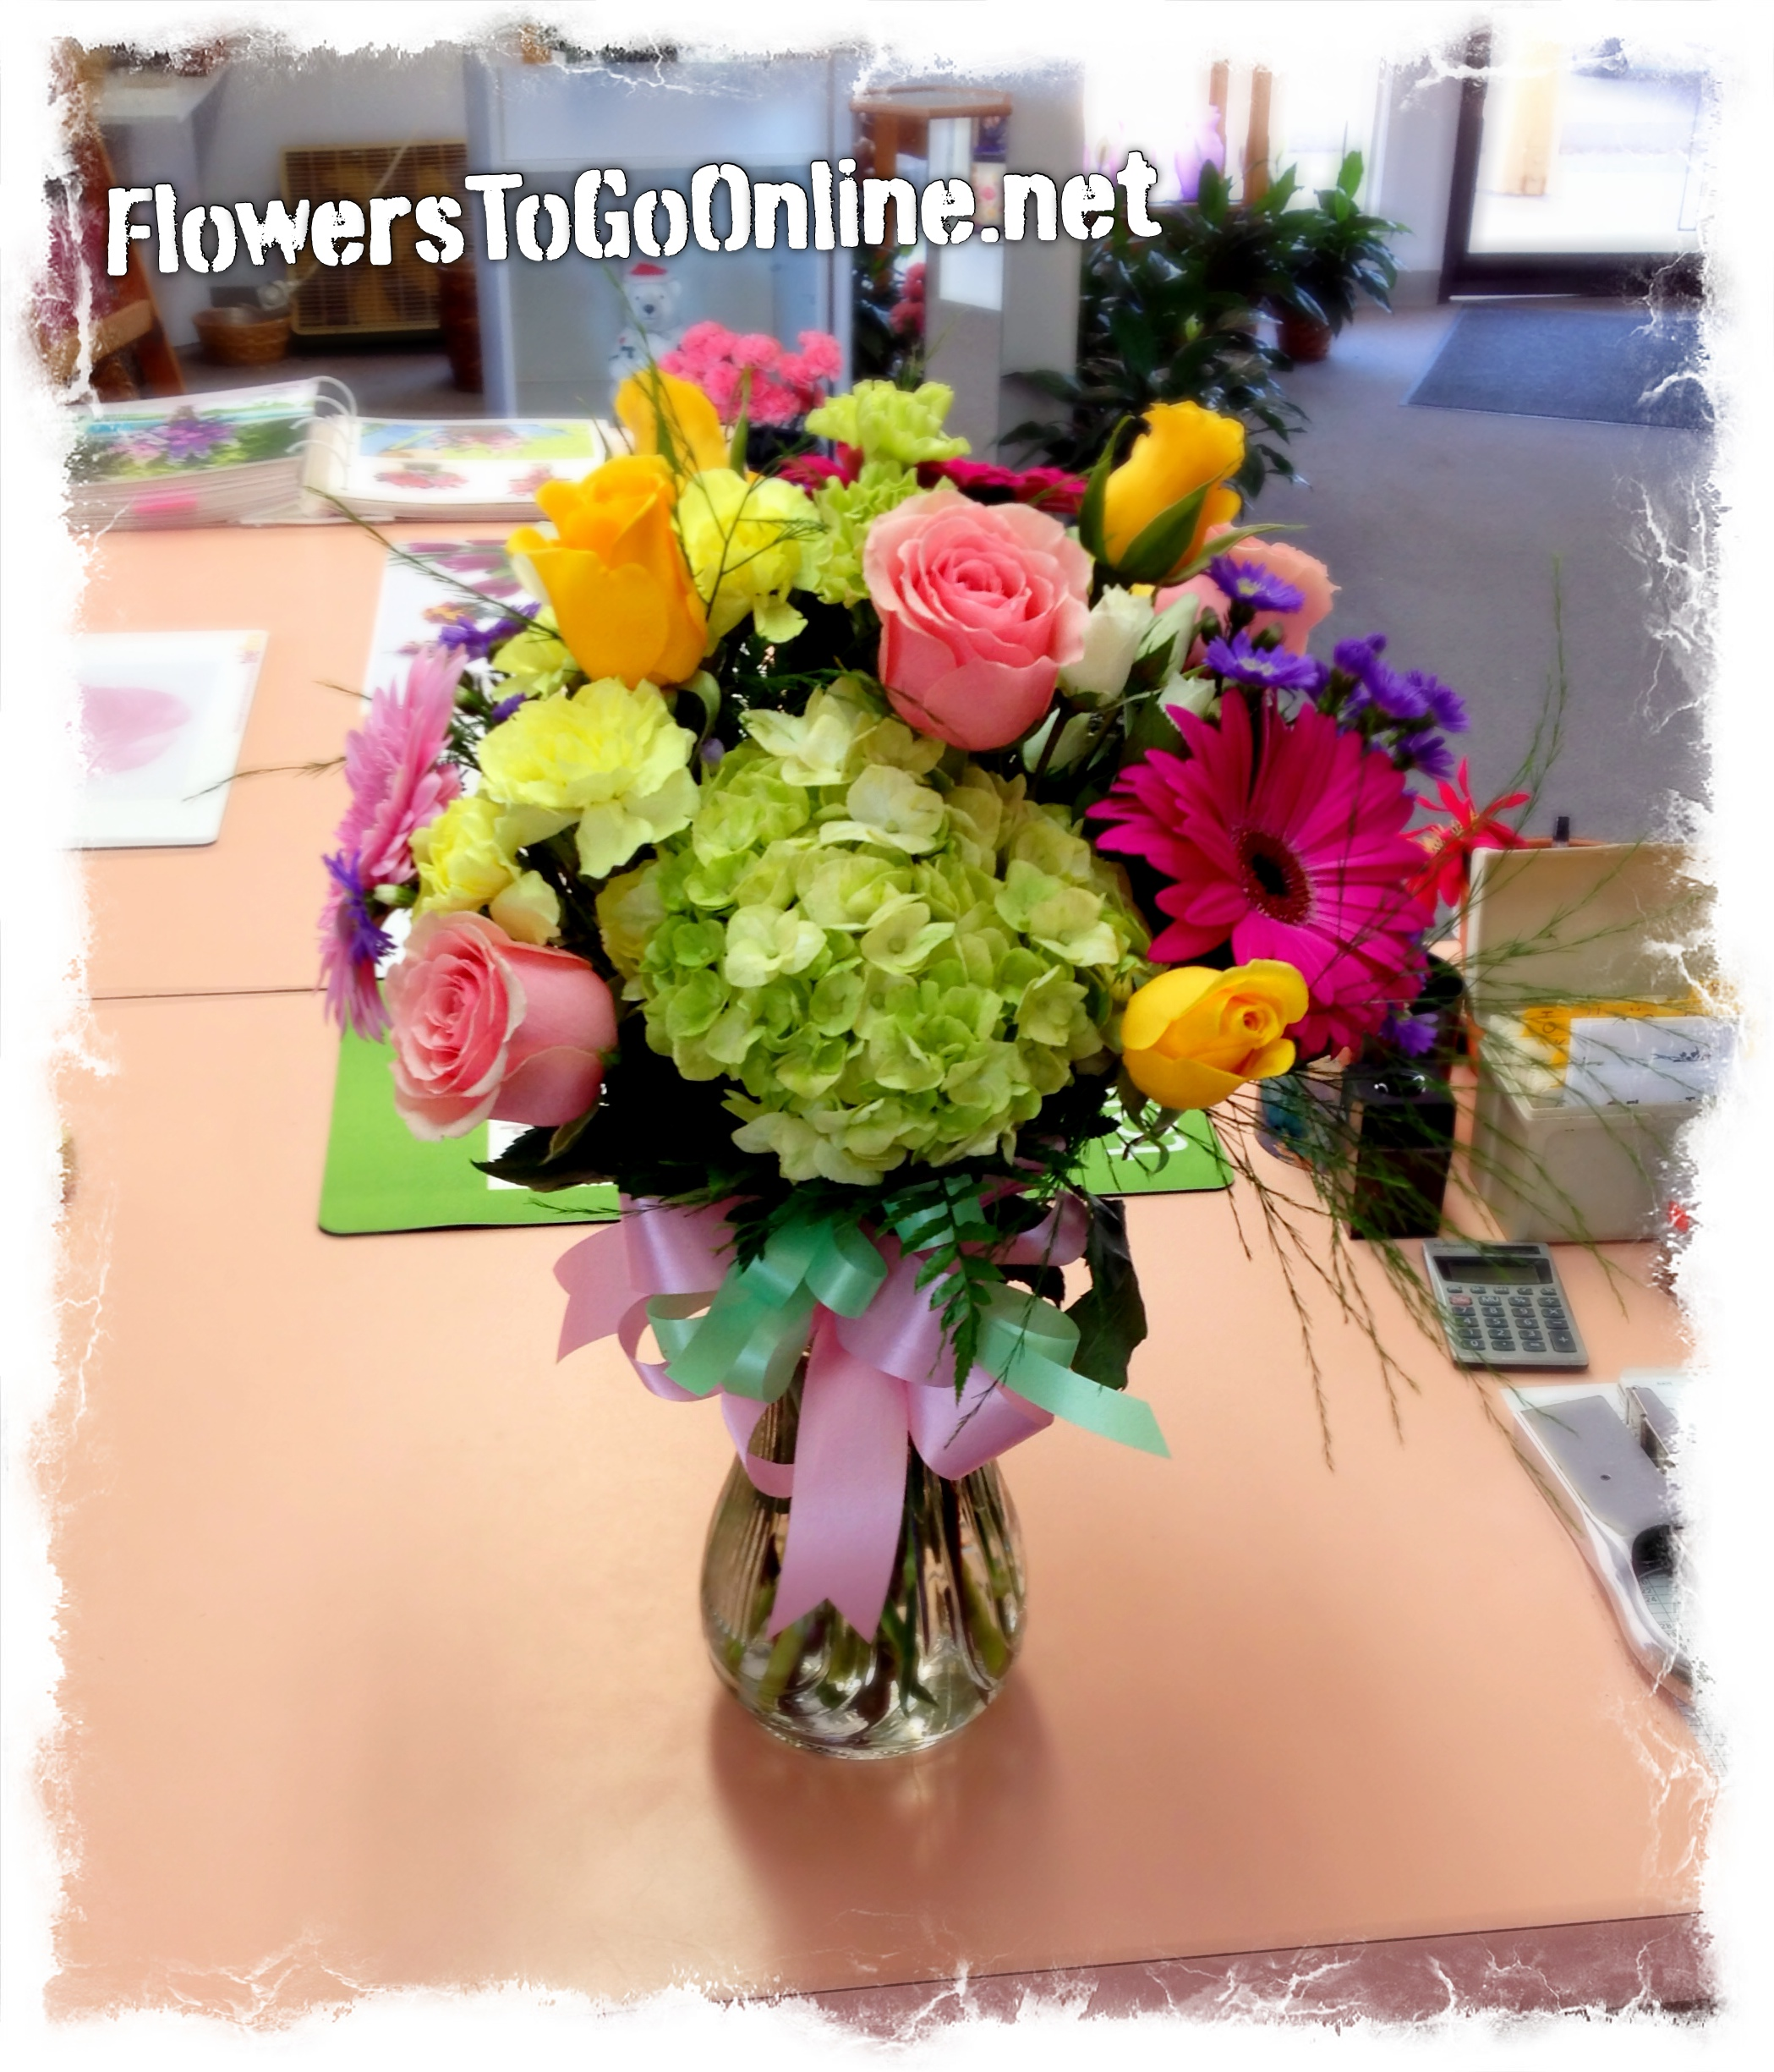 Flowers To Go 205 W Rockrimmon Blvd Ste A Colorado Springs Co